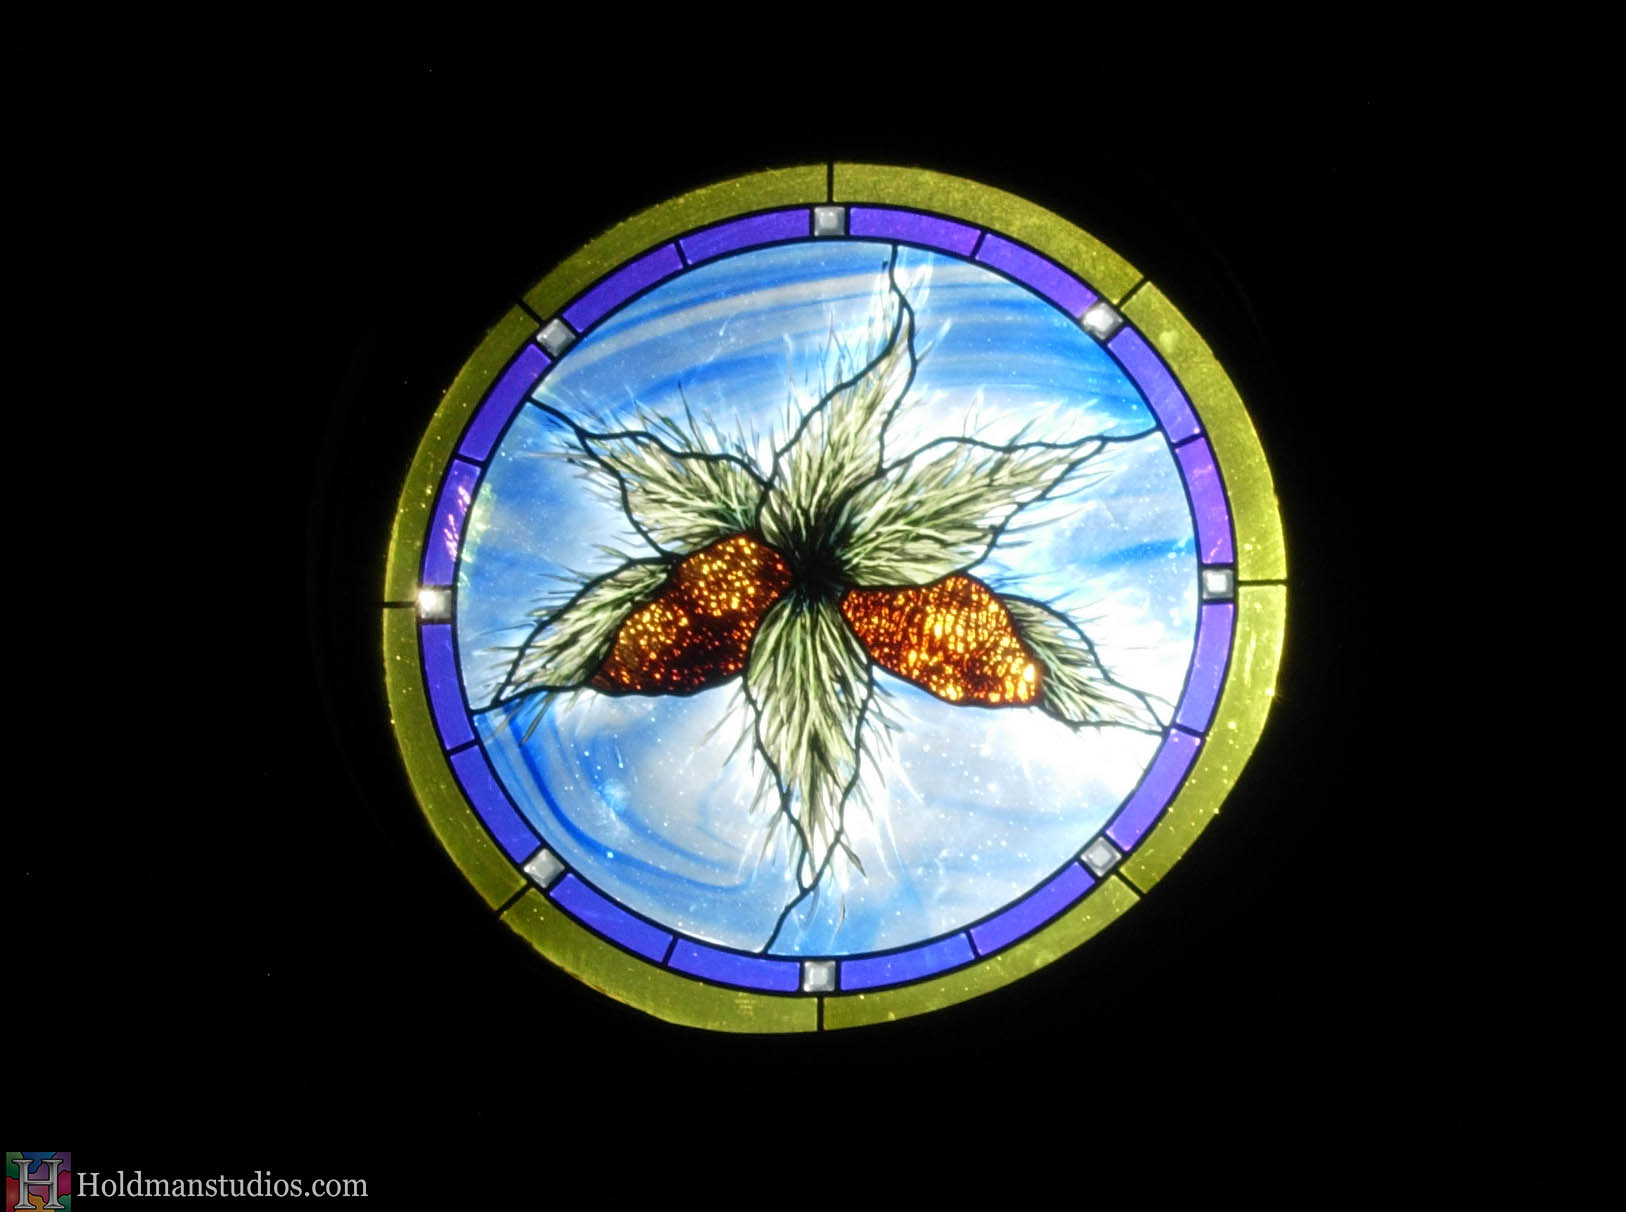 Stained glass round window of leaves Created by artists under the direction of Tom Holdman at Holdman Studios.